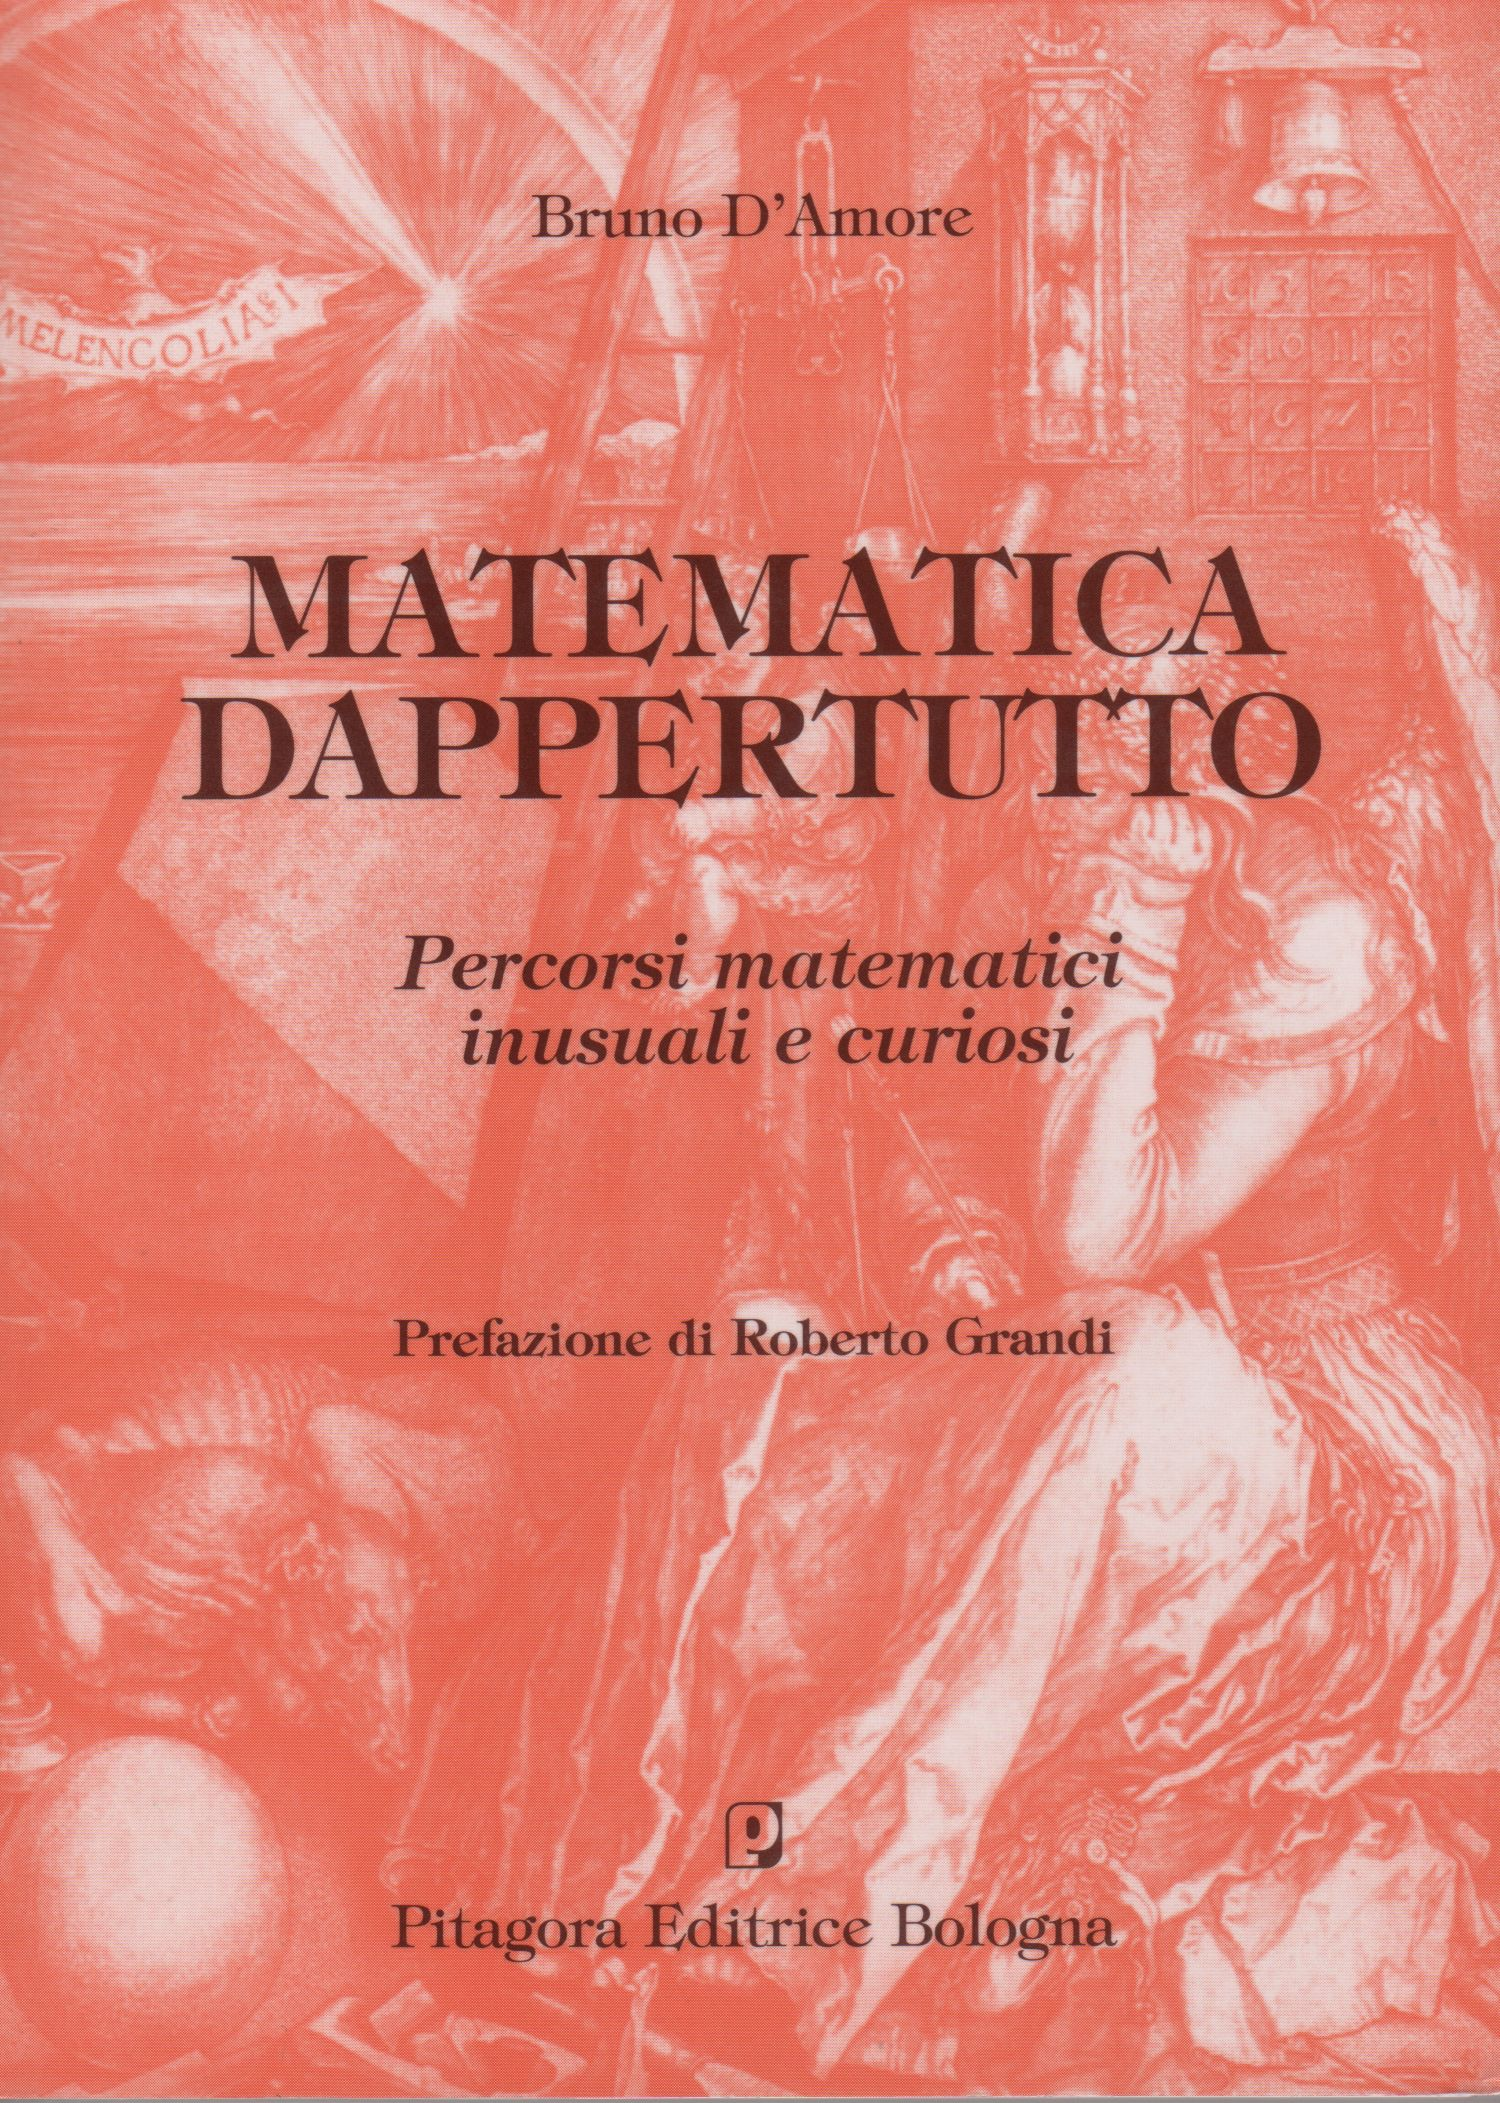 Matematica dappertutto